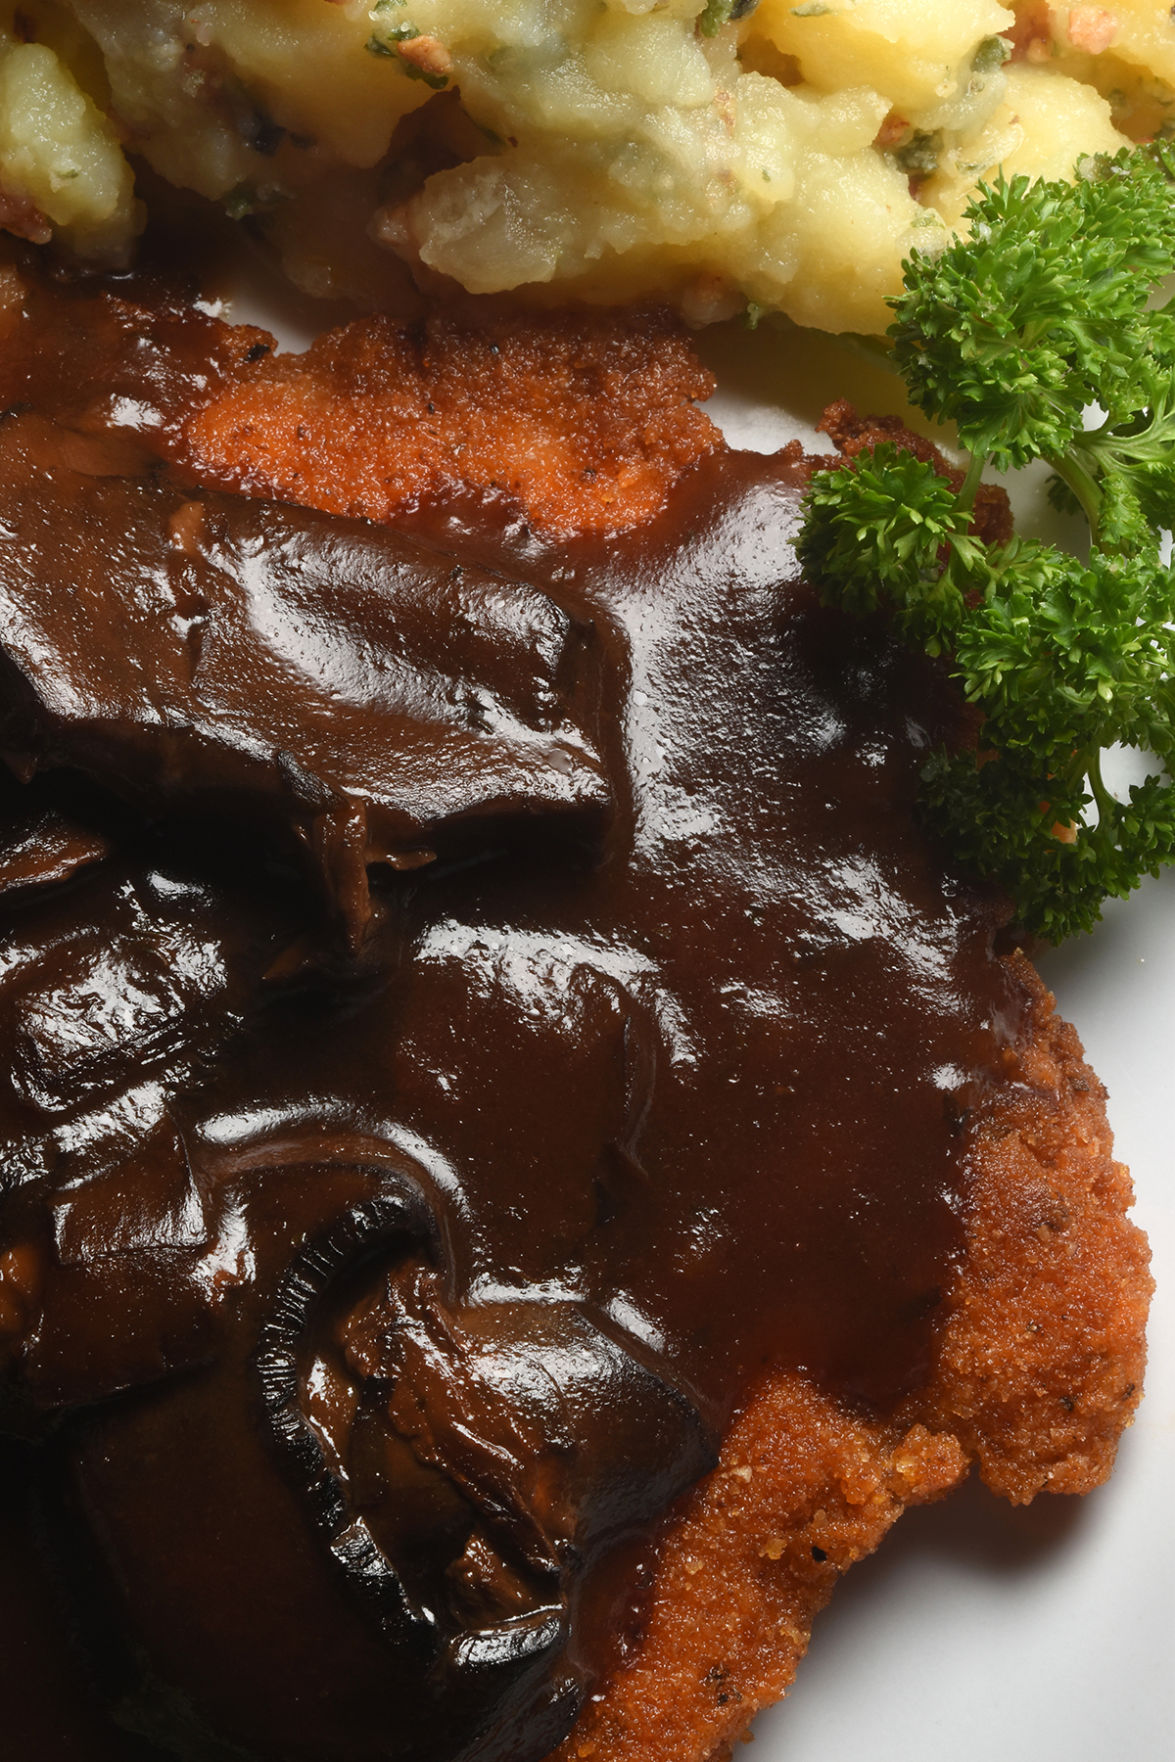 Dining Review: Schnitzel Fritz boasts German cooking and desserts